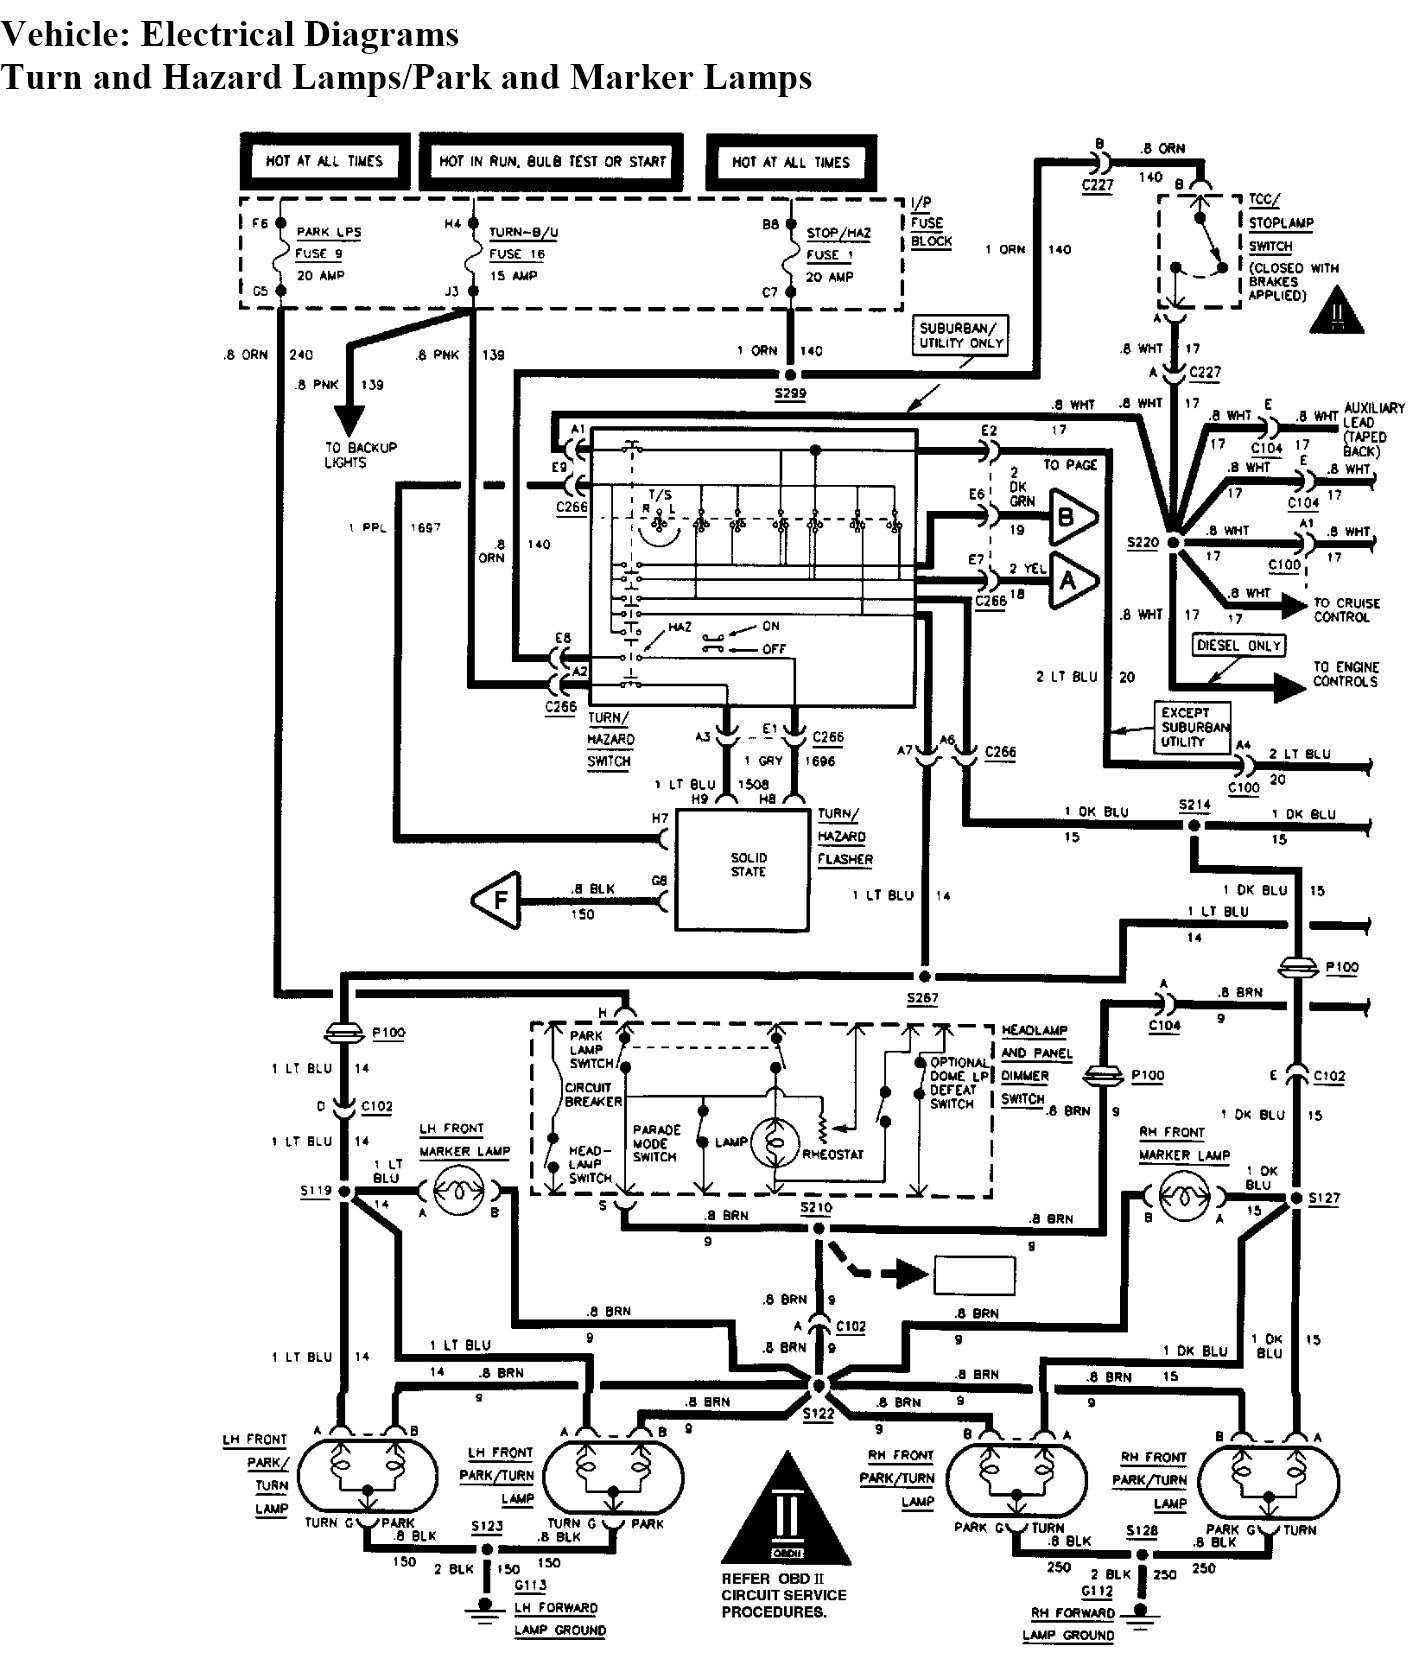 Unique Wfco Wiring Diagram